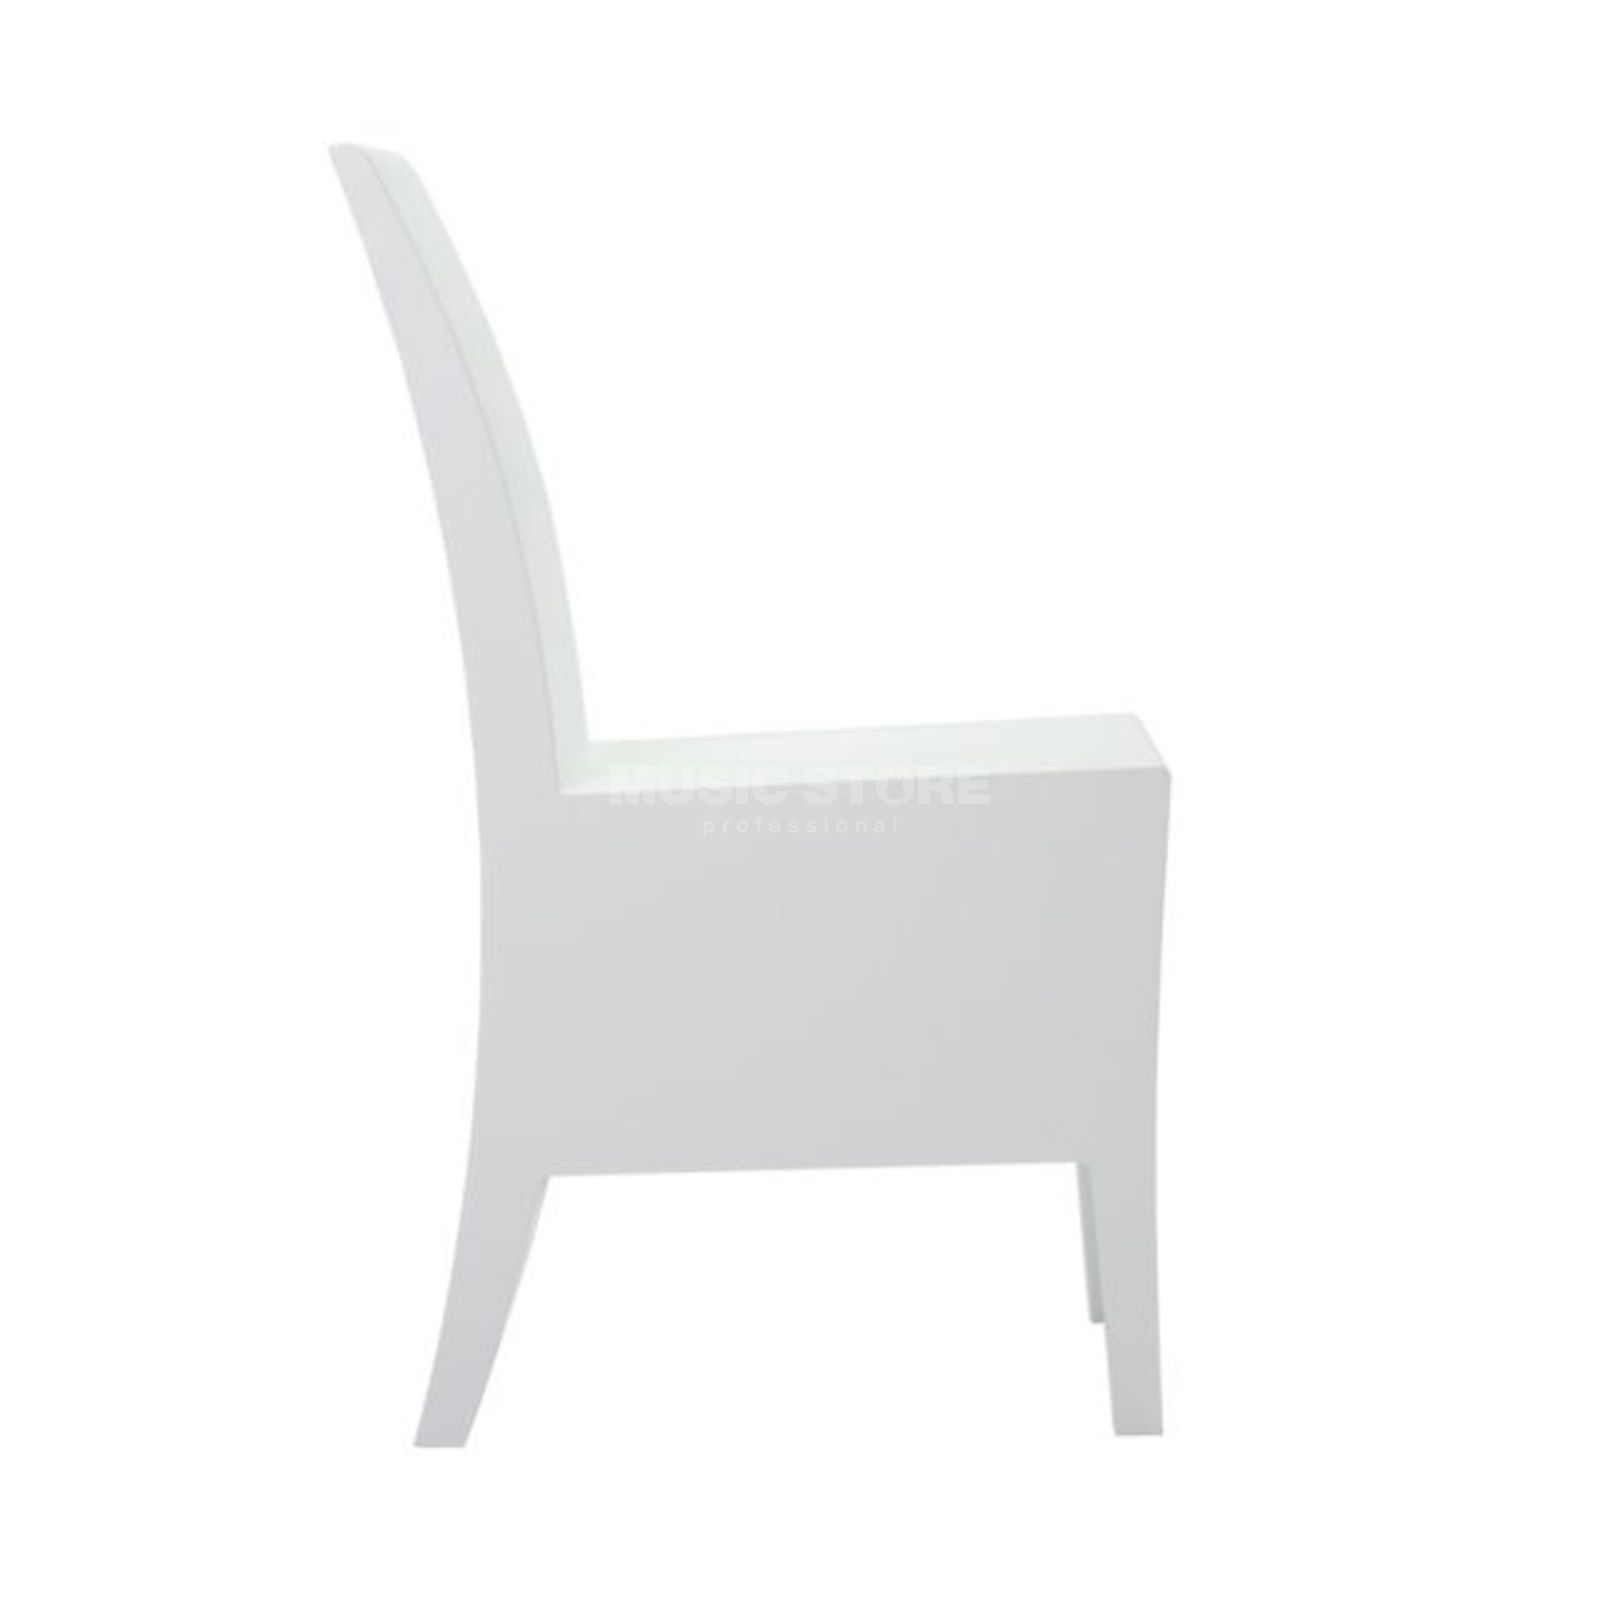 Baff Music Chair - White Produktbillede